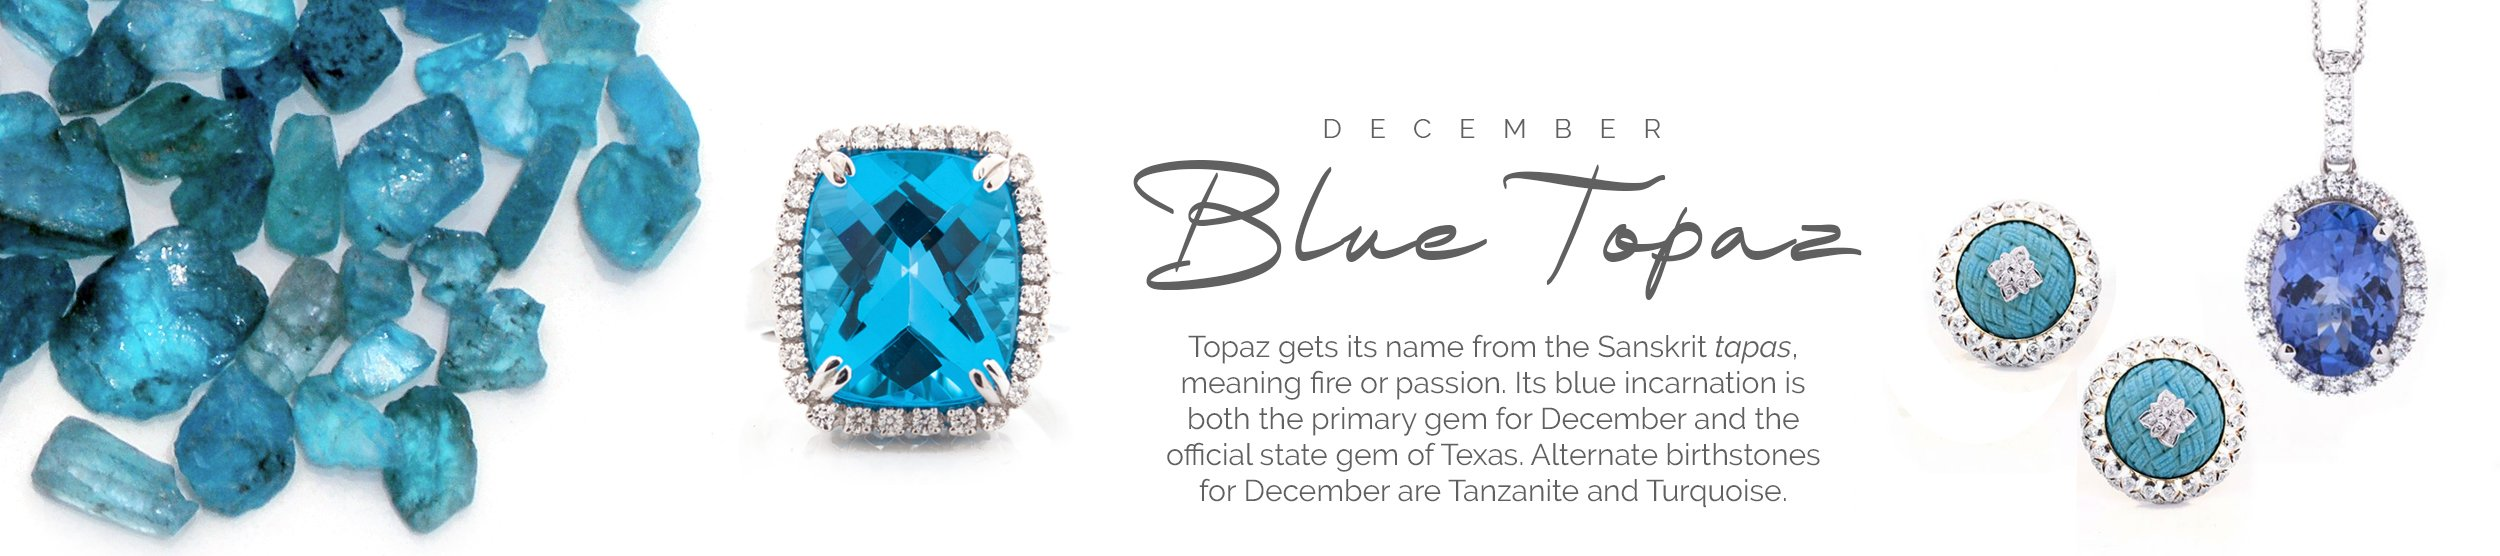 December Birthstone: Tanzanite/Turquoise/Blue Topaz